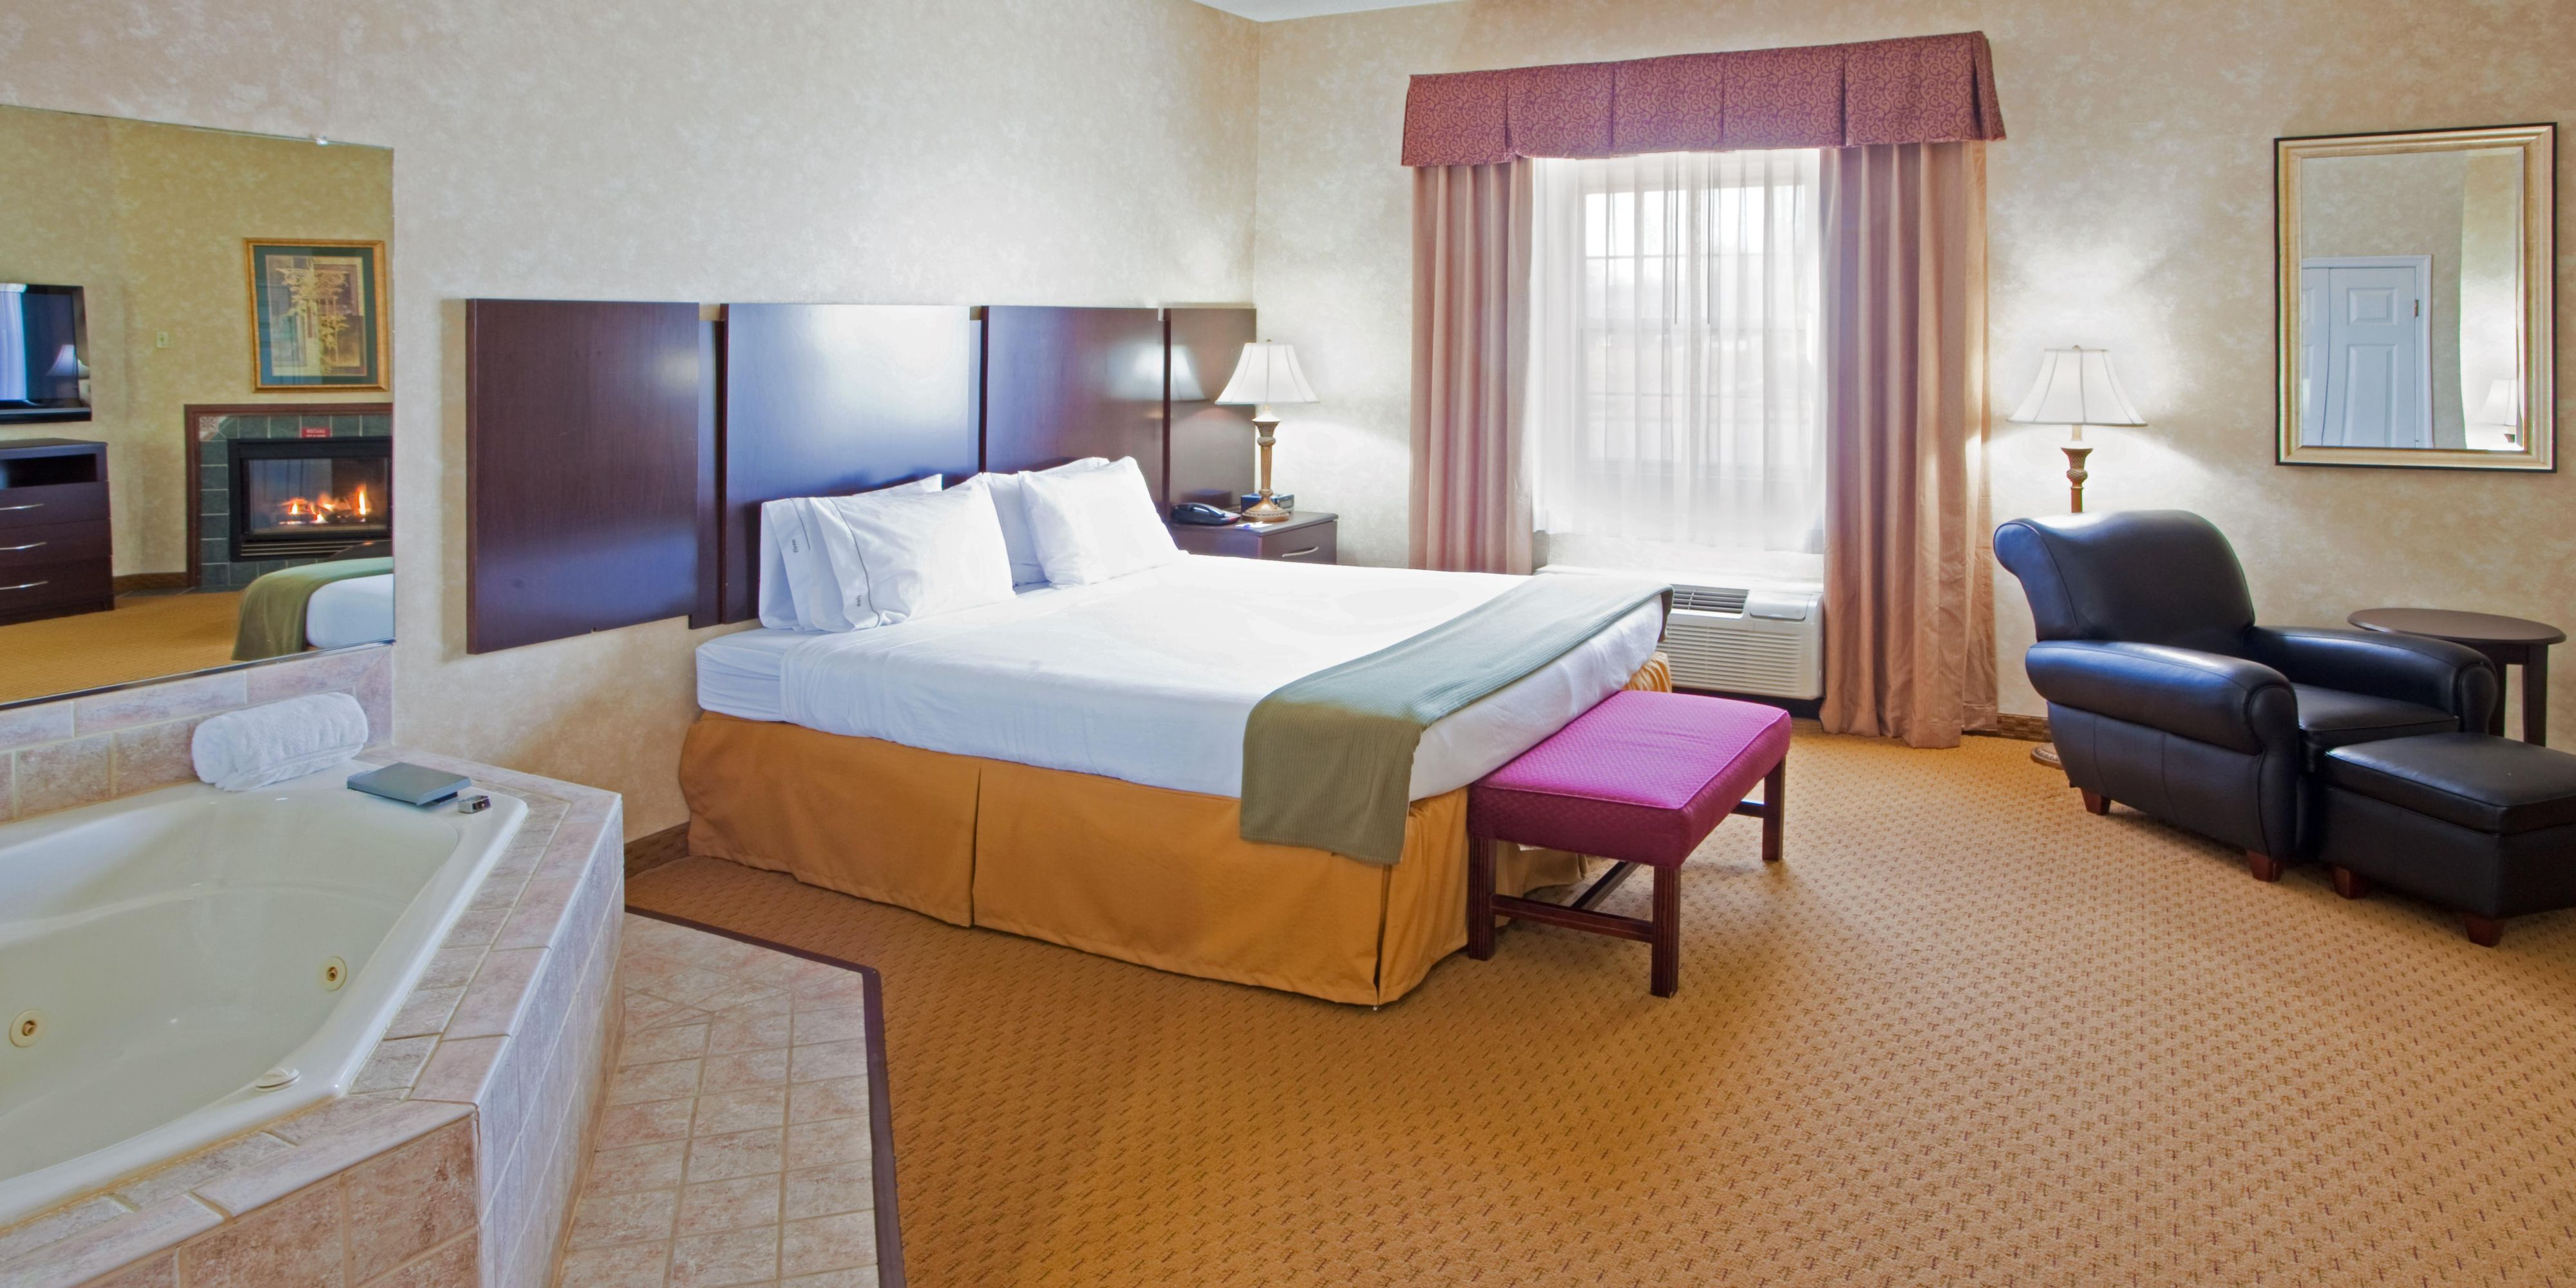 Holiday Inn Express Prince Frederick Hotel by IHG